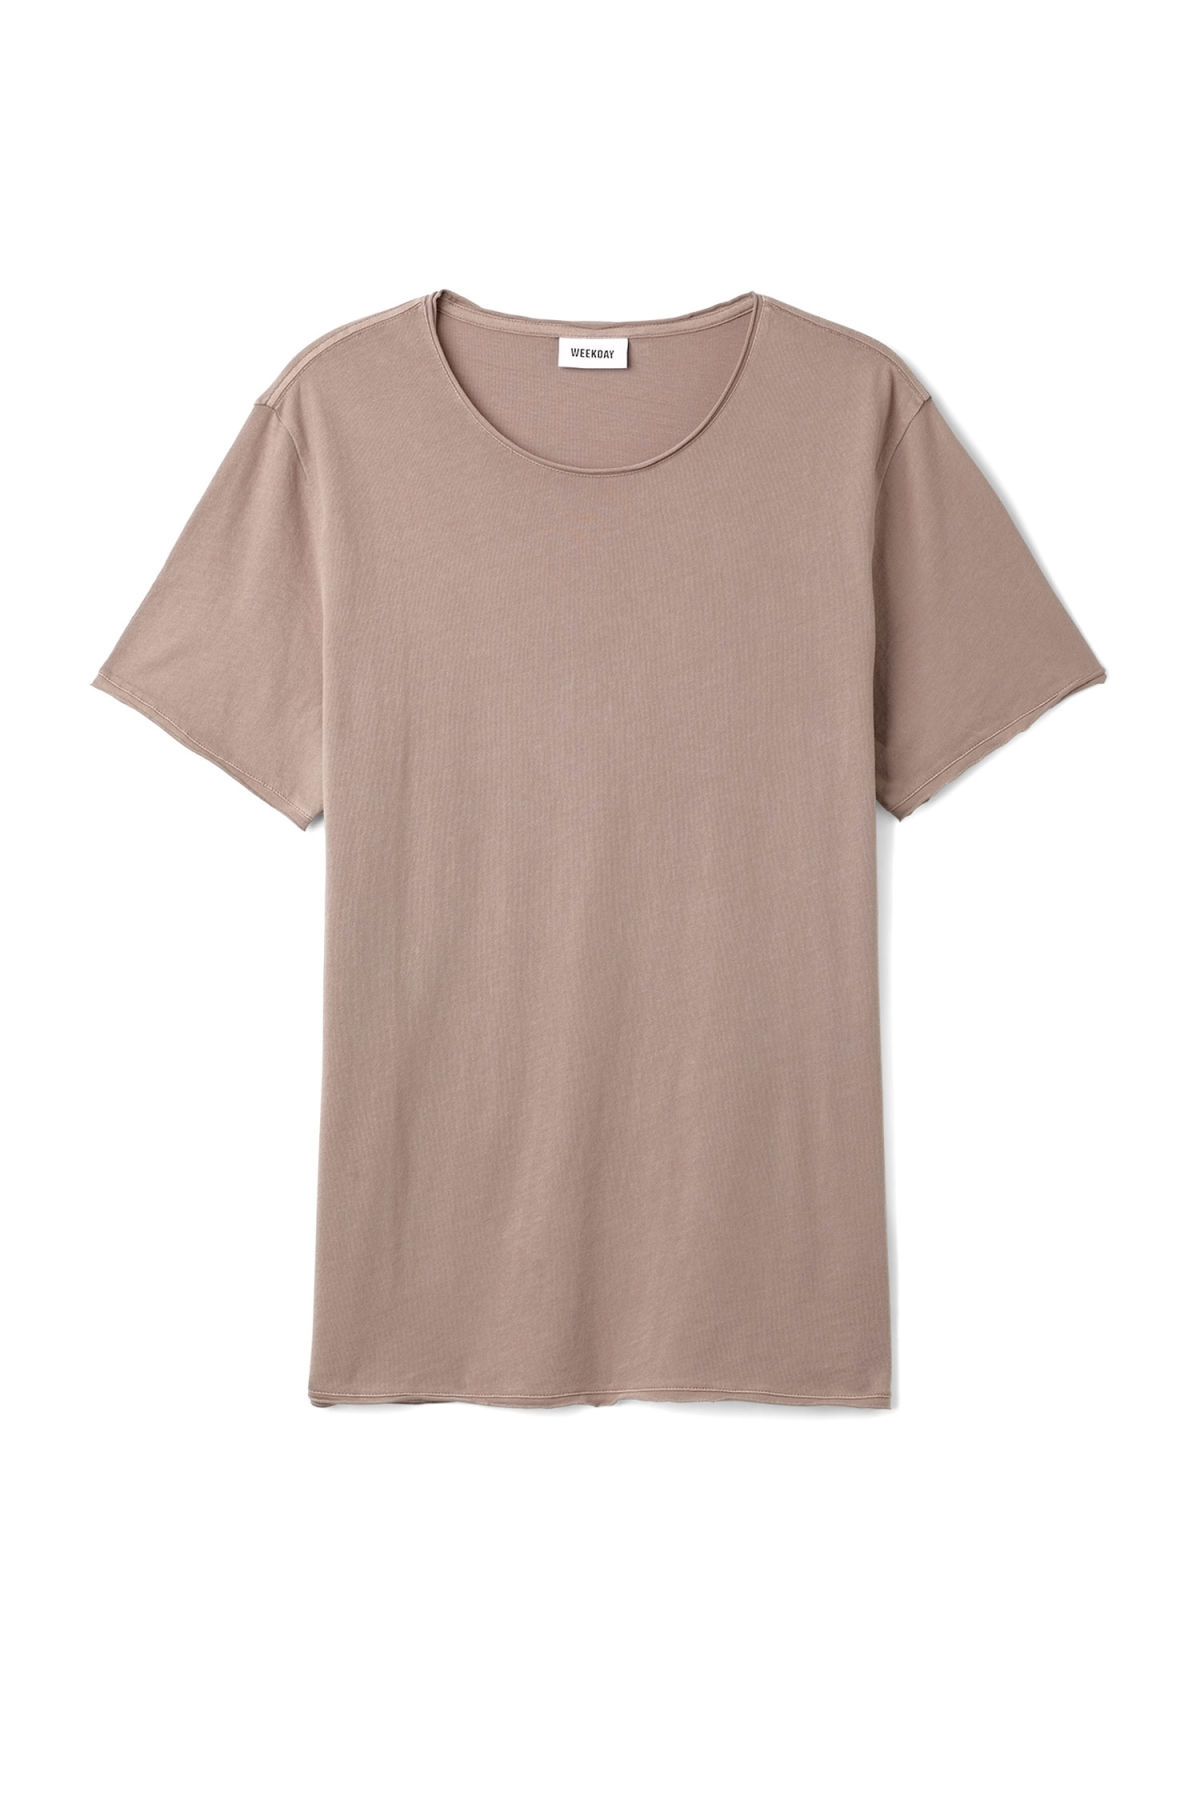 Front image of Weekday dark t-shirt in brown